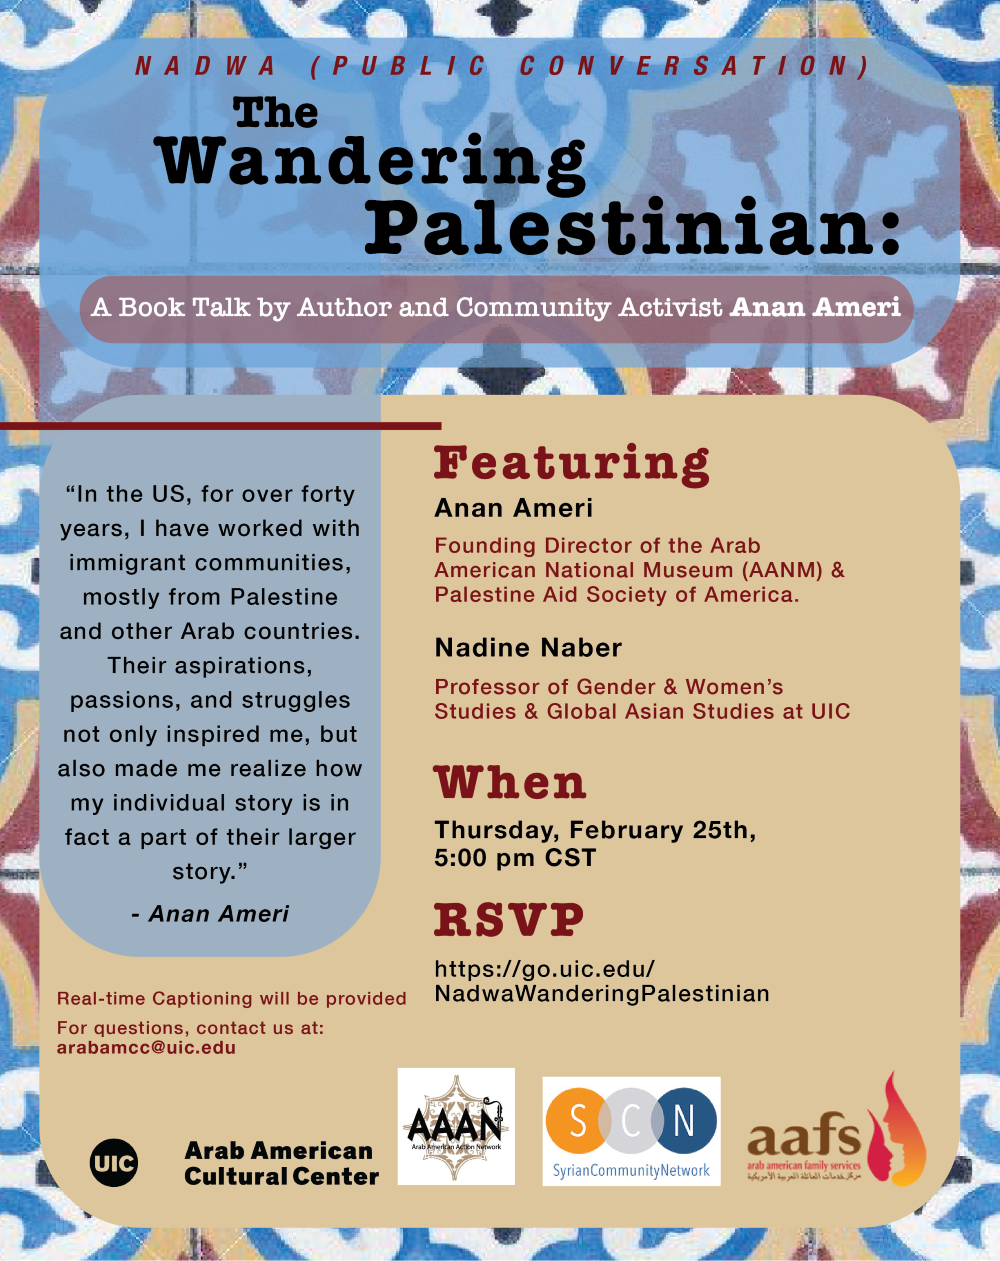 Islamic geometric art design in blue, white, and light red constitute the background and border. The top lists the name of the event. The right side beige panel lists information about the speakers, the date, and how to RSVP. The left side light blue panel has a quote by the invited author. the bottom has logos of the Arab American Cultural Center, the Arab American Action Networ, and the Arab American Family Services.